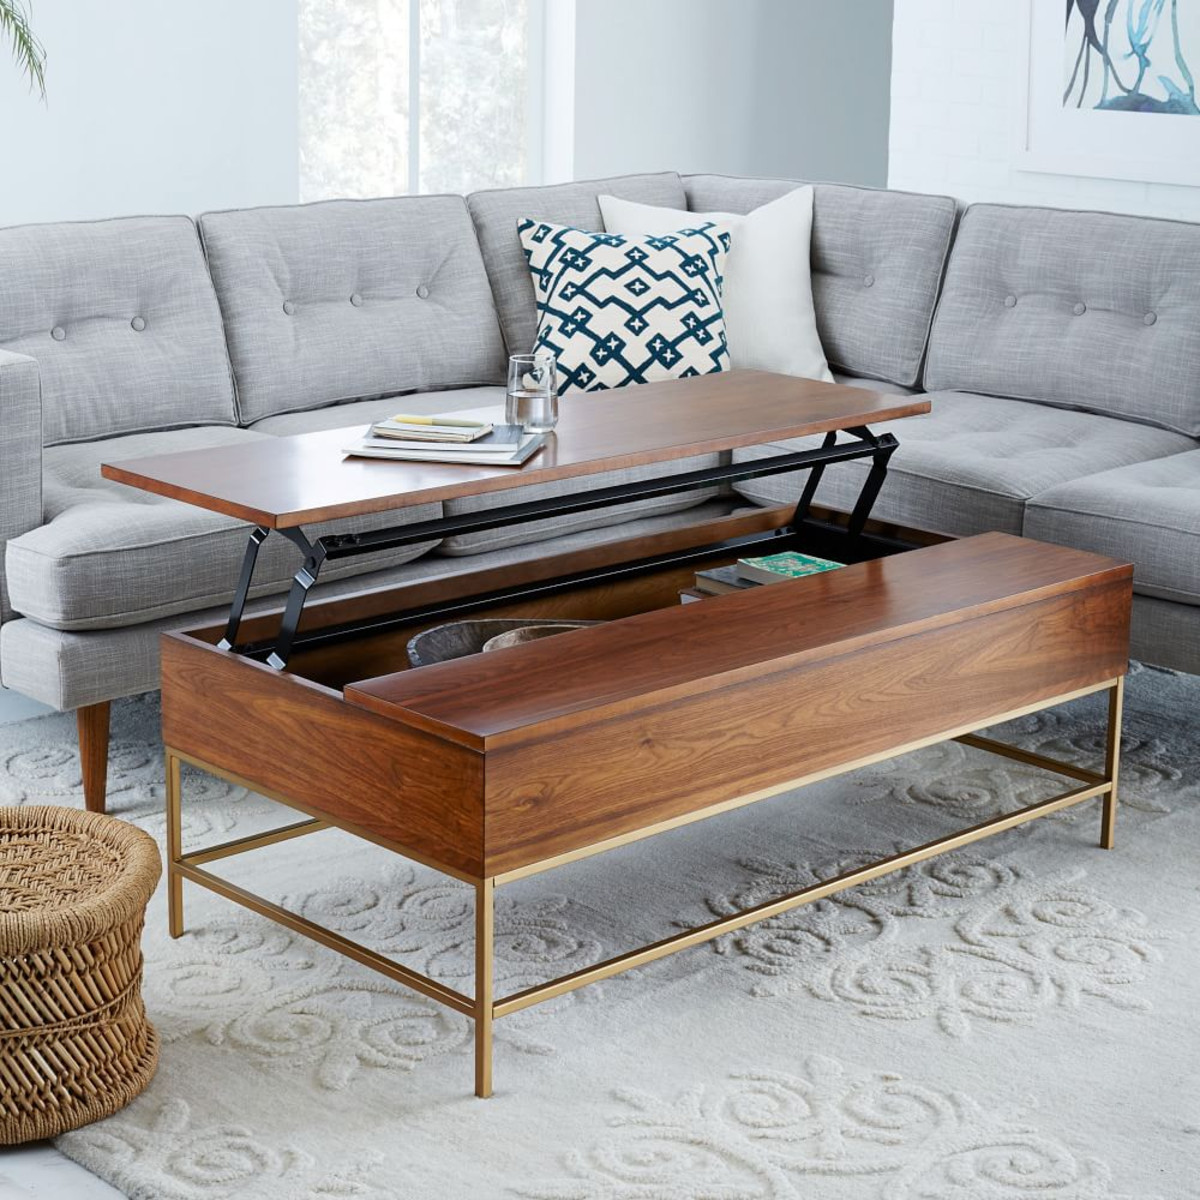 Best ideas about Coffee Tables With Storage . Save or Pin 8 Best Coffee Tables For Small Spaces Now.